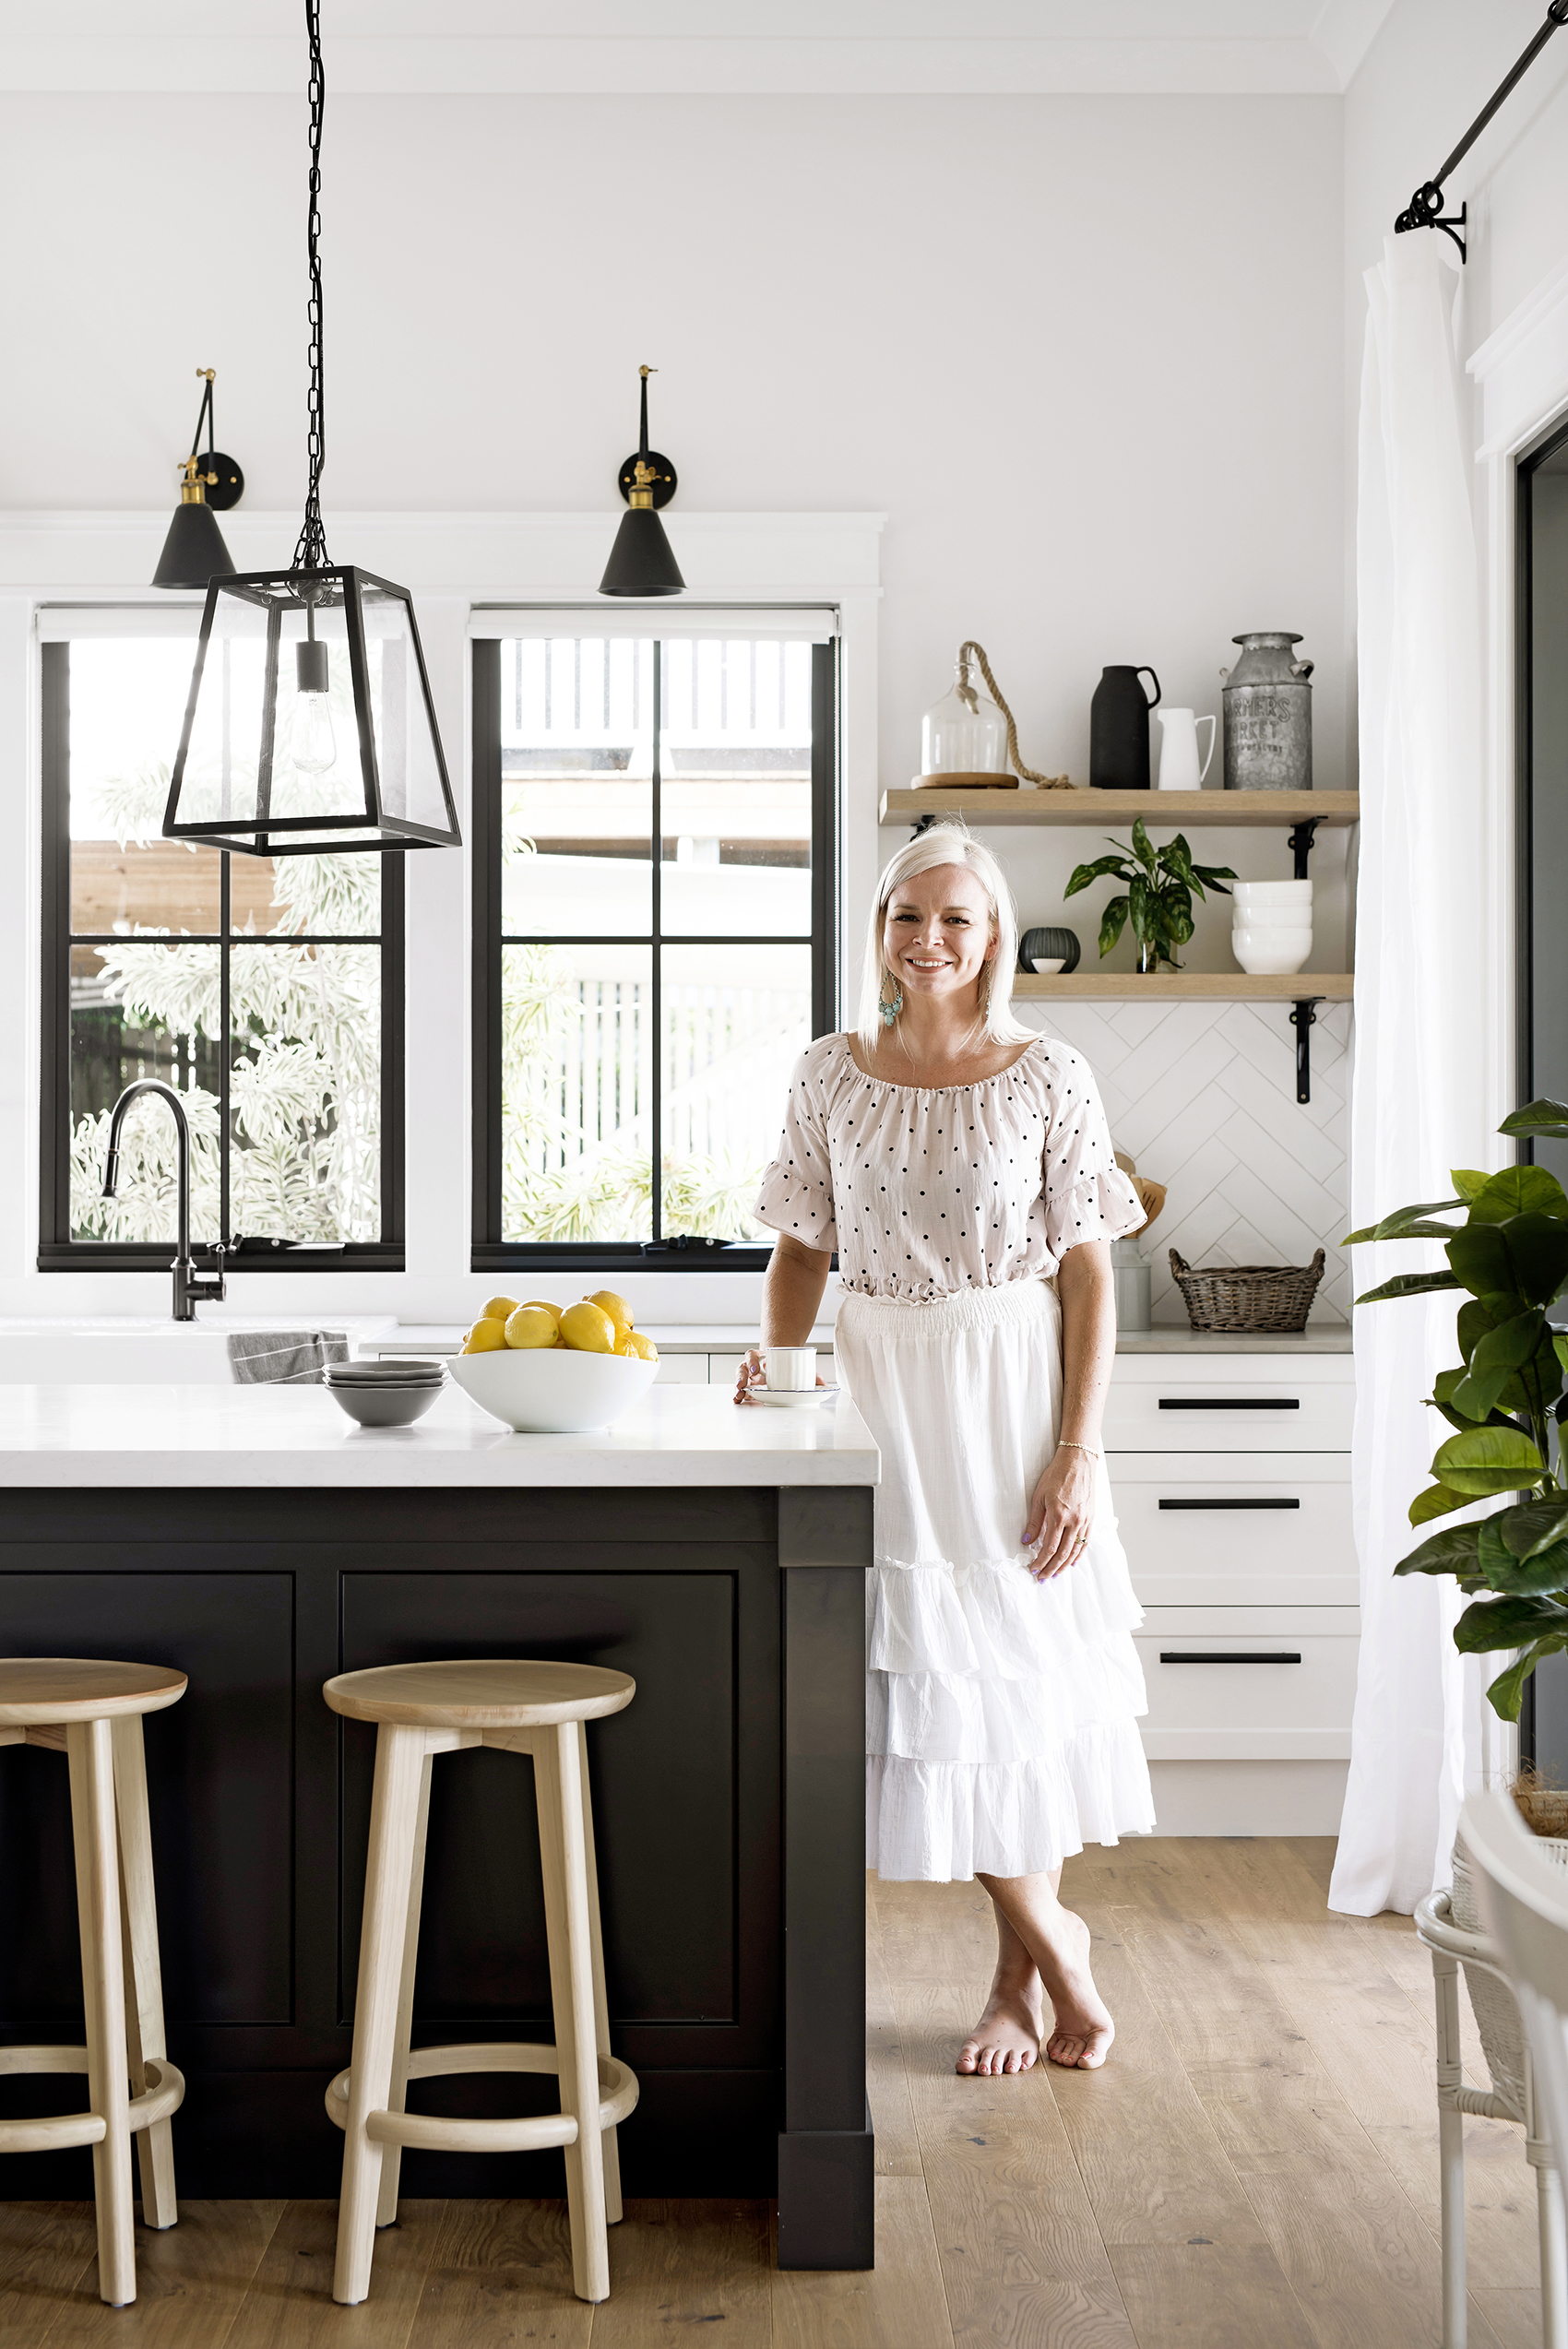 Photography   Mindi Cooke  /  Styling   Kylie Jackes  /  Interior design   Front Porch Properties